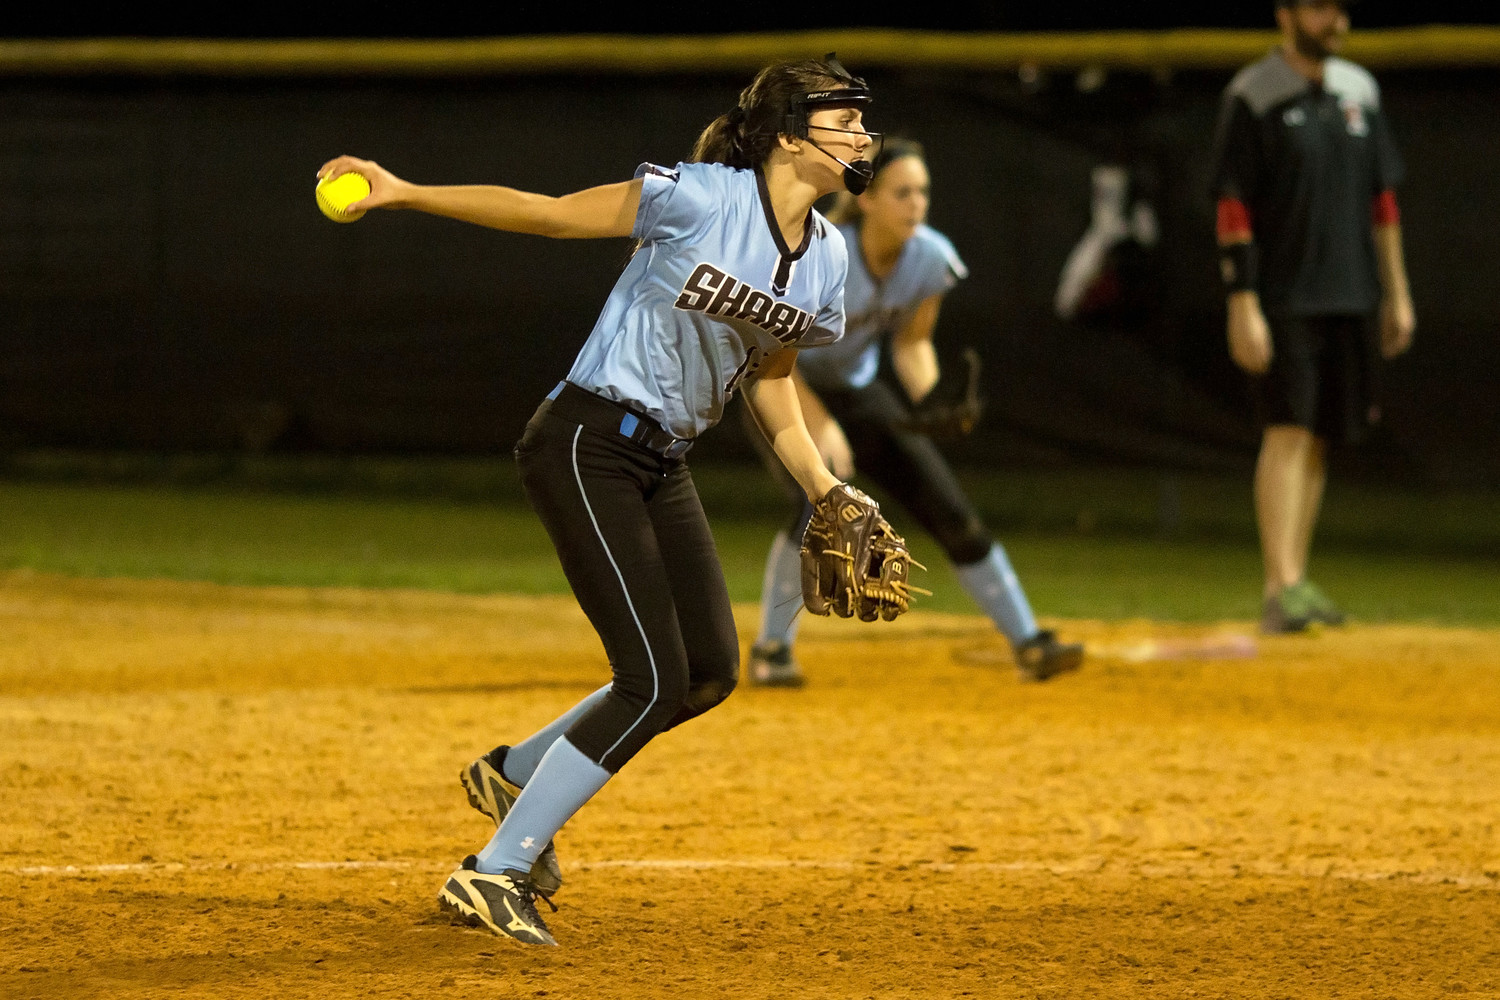 Catherine Beaton pitches in relief for the Sharks against Creekside